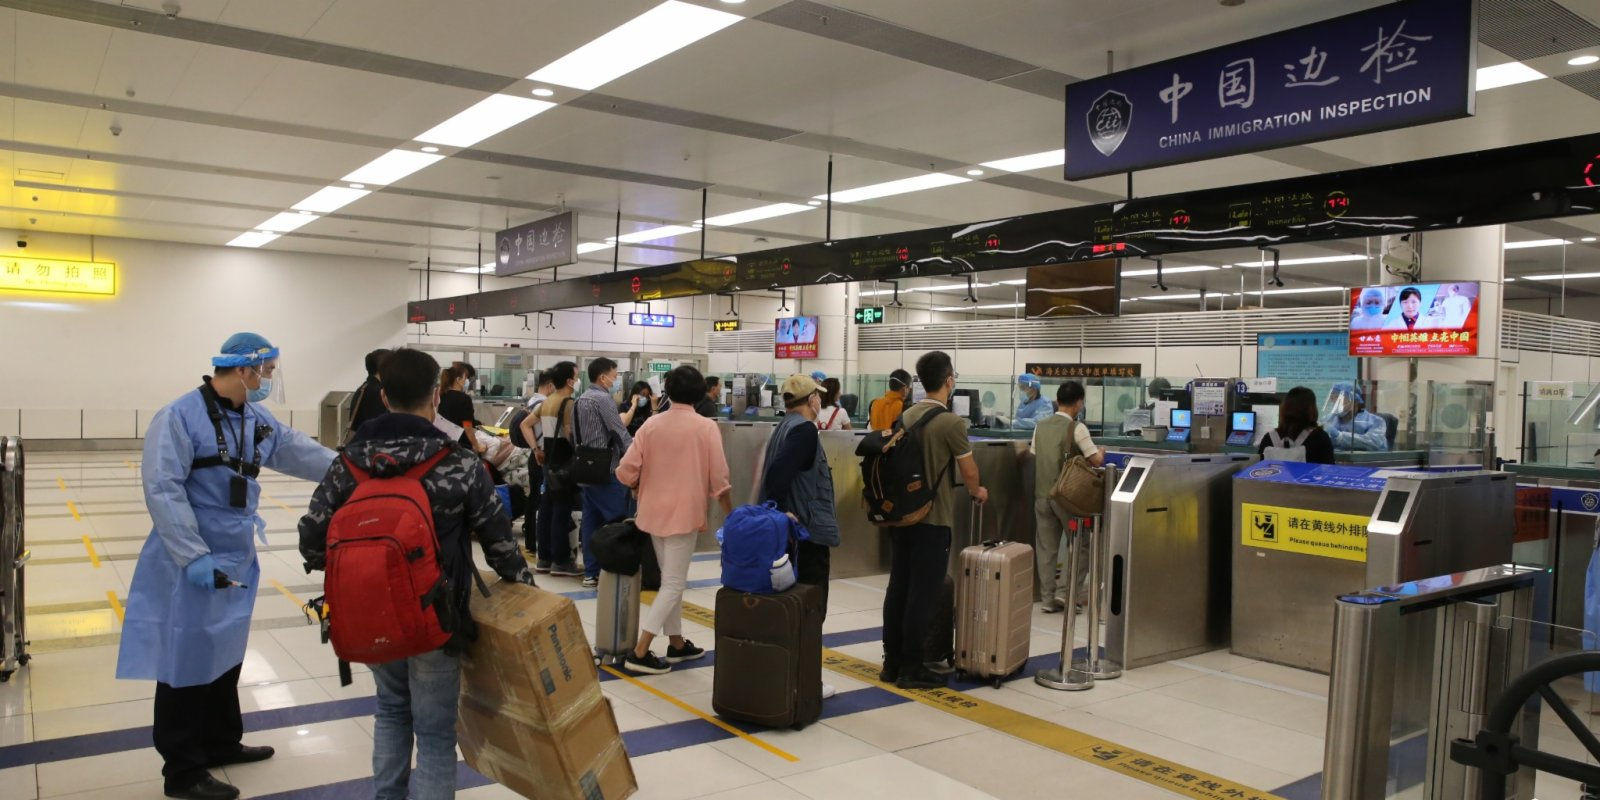 Arrangements for Come2hk Scheme announced, with daily entry quota of 2k